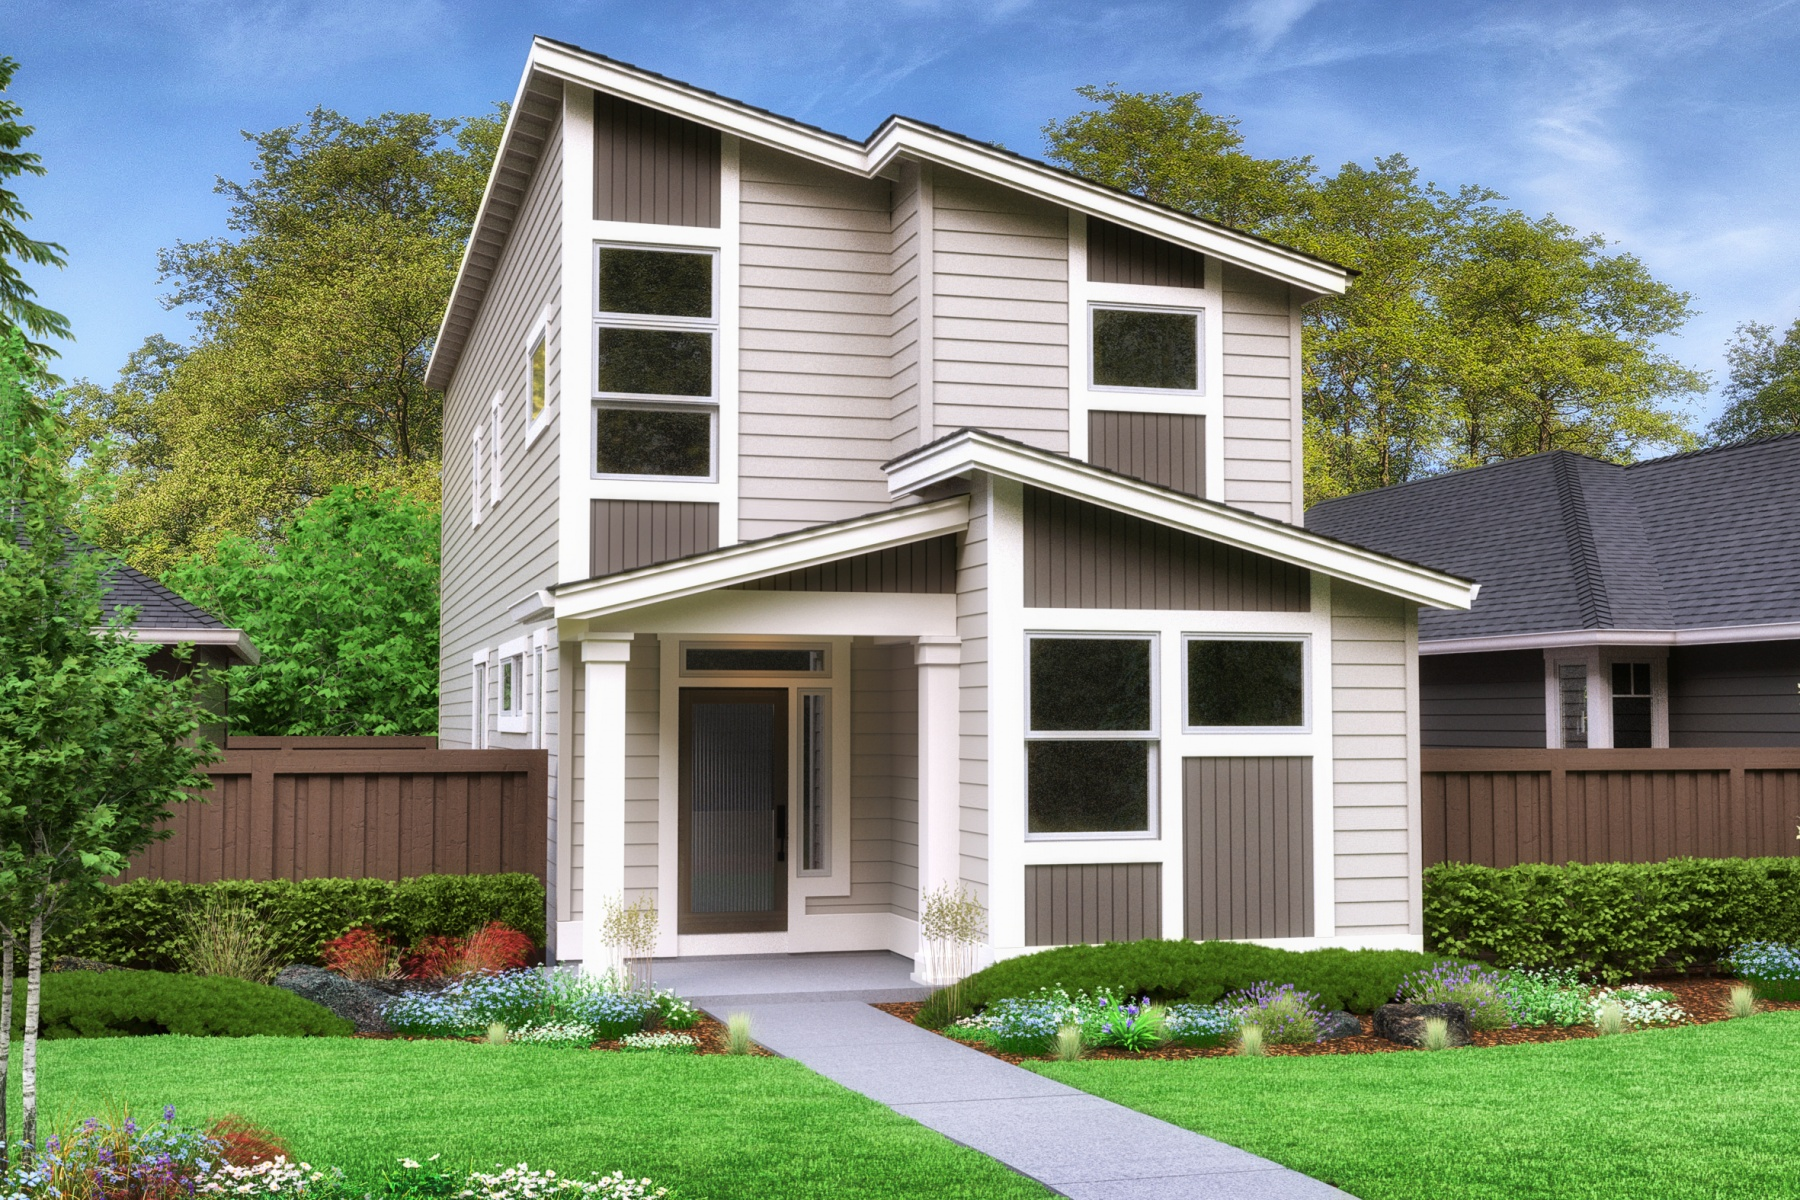 """Single Family Home for Sale at New Home in New """"Triple Ridge!"""" 4382 SW Canal Blvd Lot 2 Redmond, Oregon, 97756 United States"""